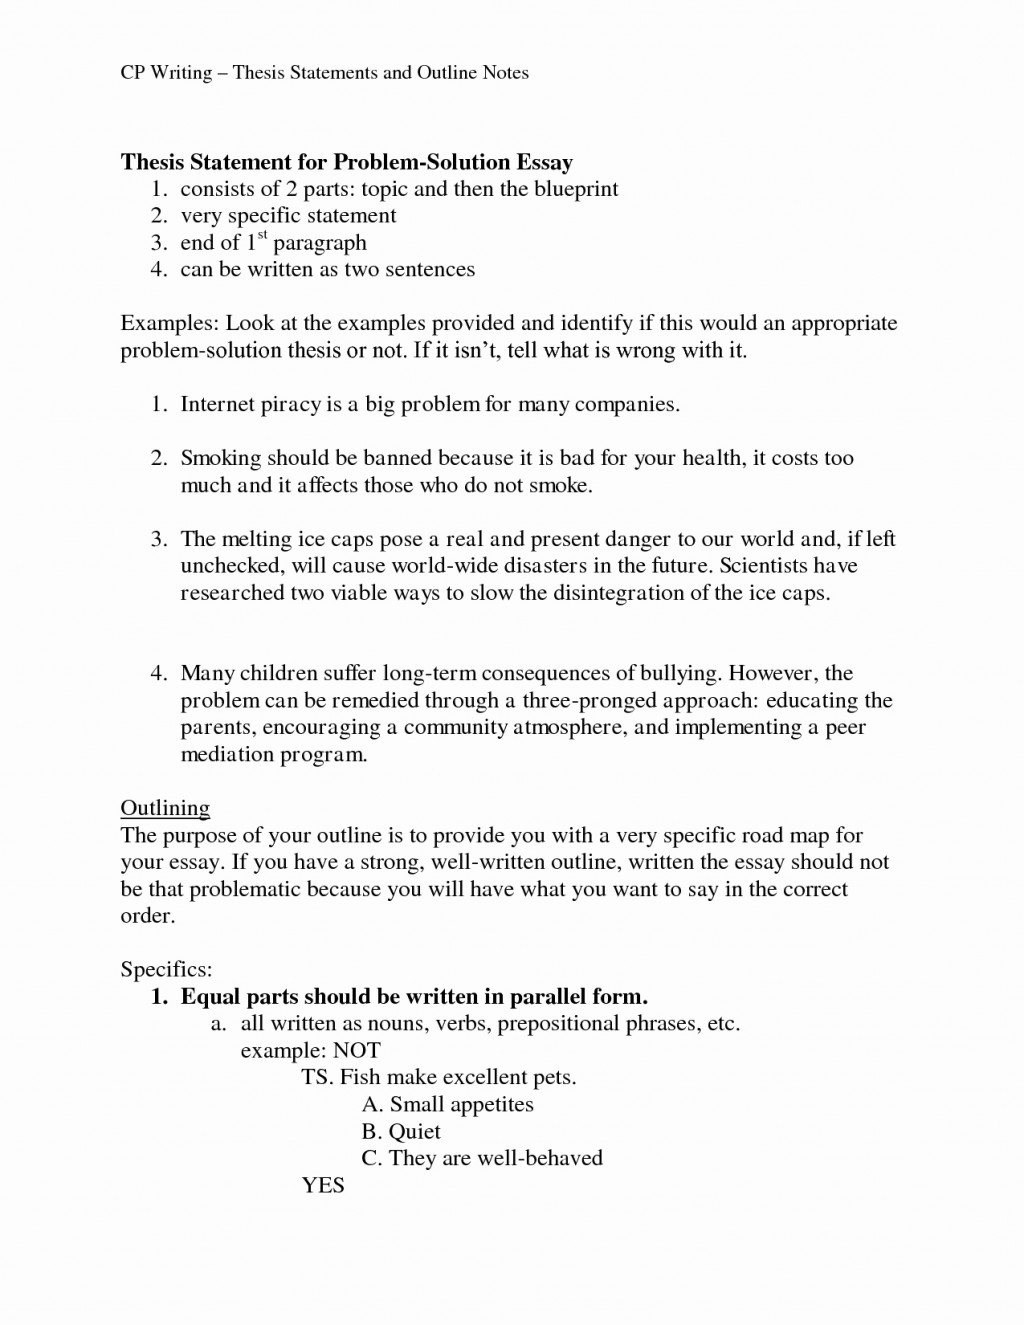 002 Research Paper Example Of Statement The Problem In About Bullyingrrative Paragraph Examples Myself Inspirational Argumentative Essay Papers Sample An With Family Unusual Bullying Cyber Large